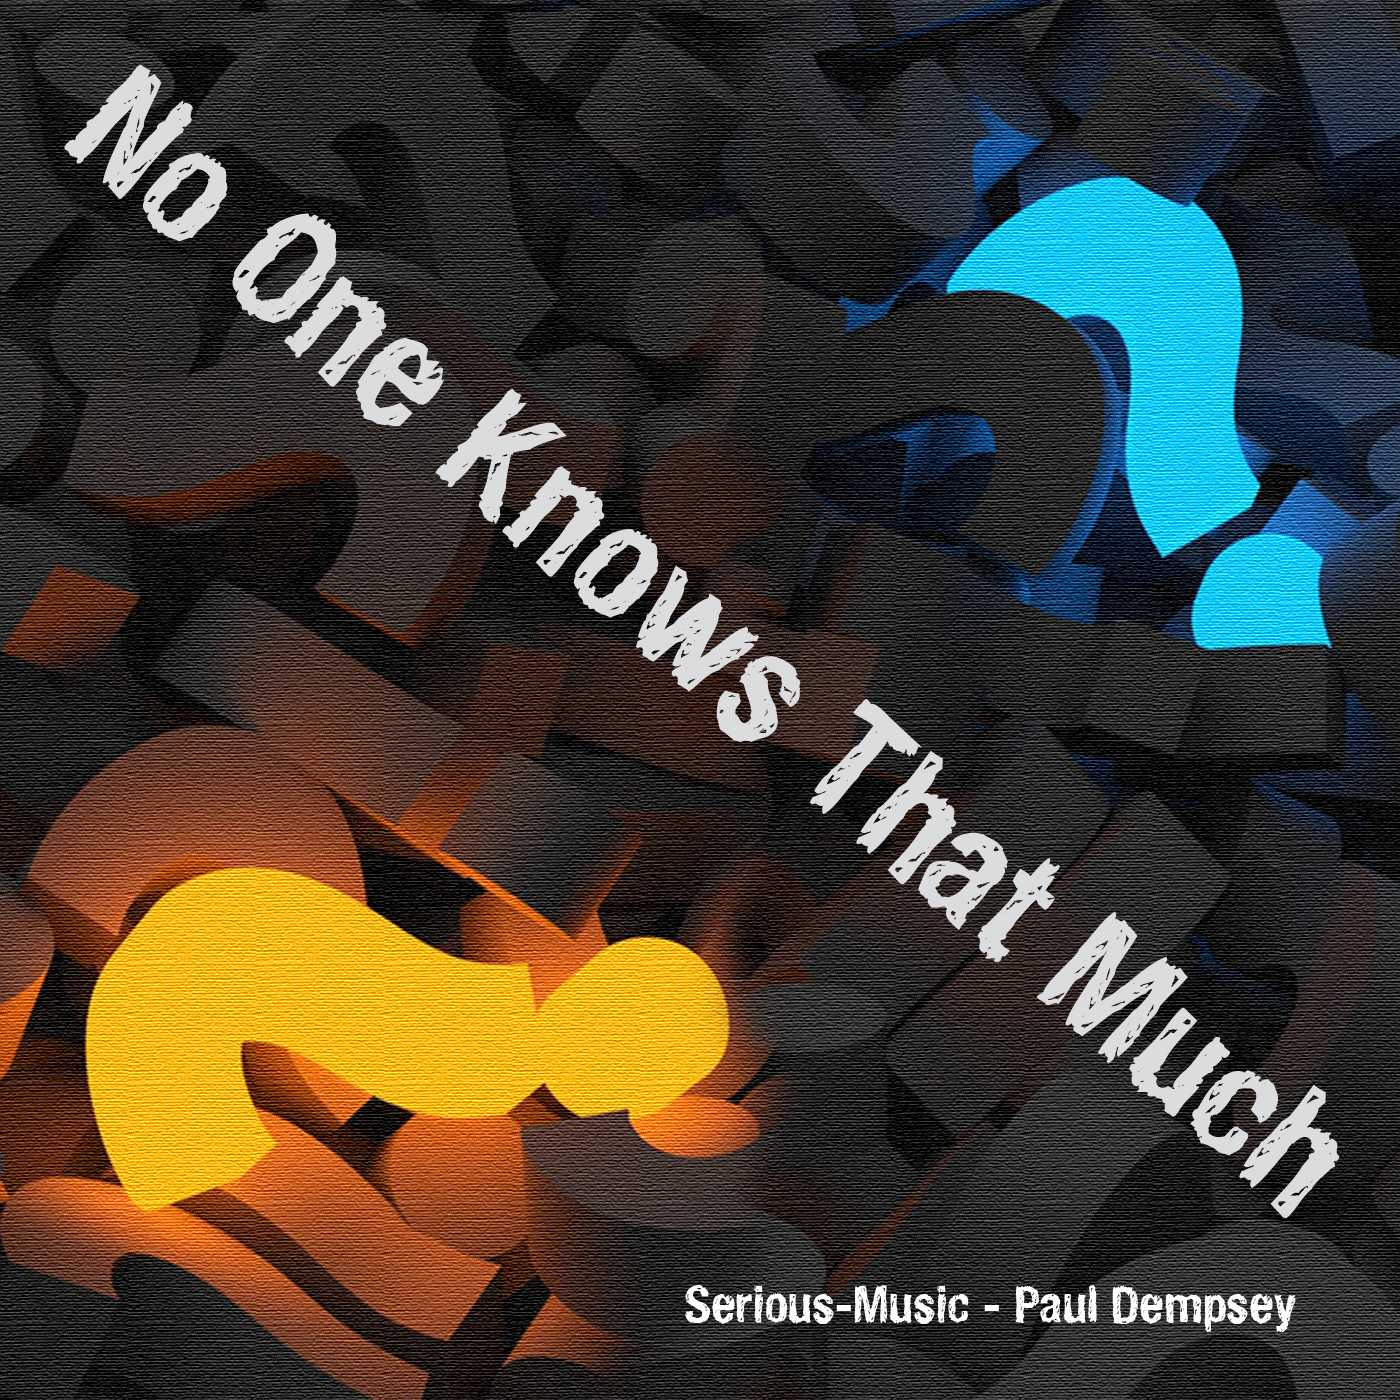 No One Knows That Much feat. Paul Dempsey - Album TRUTH